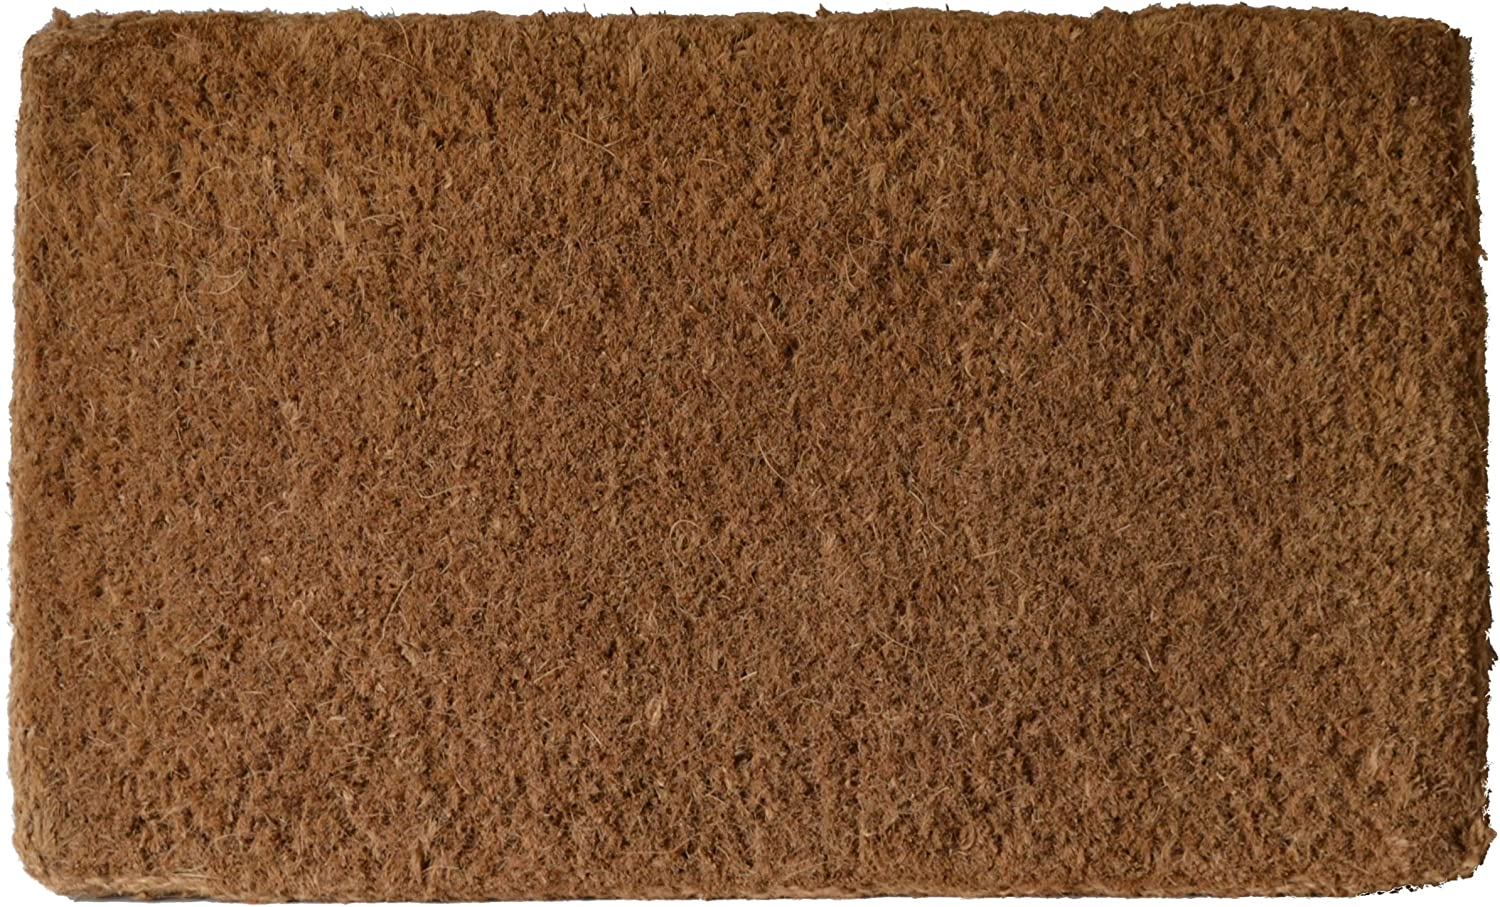 Imports Decor 1203brm Plain Coir Doormat 18 X 30 Inch Garden Outdoor